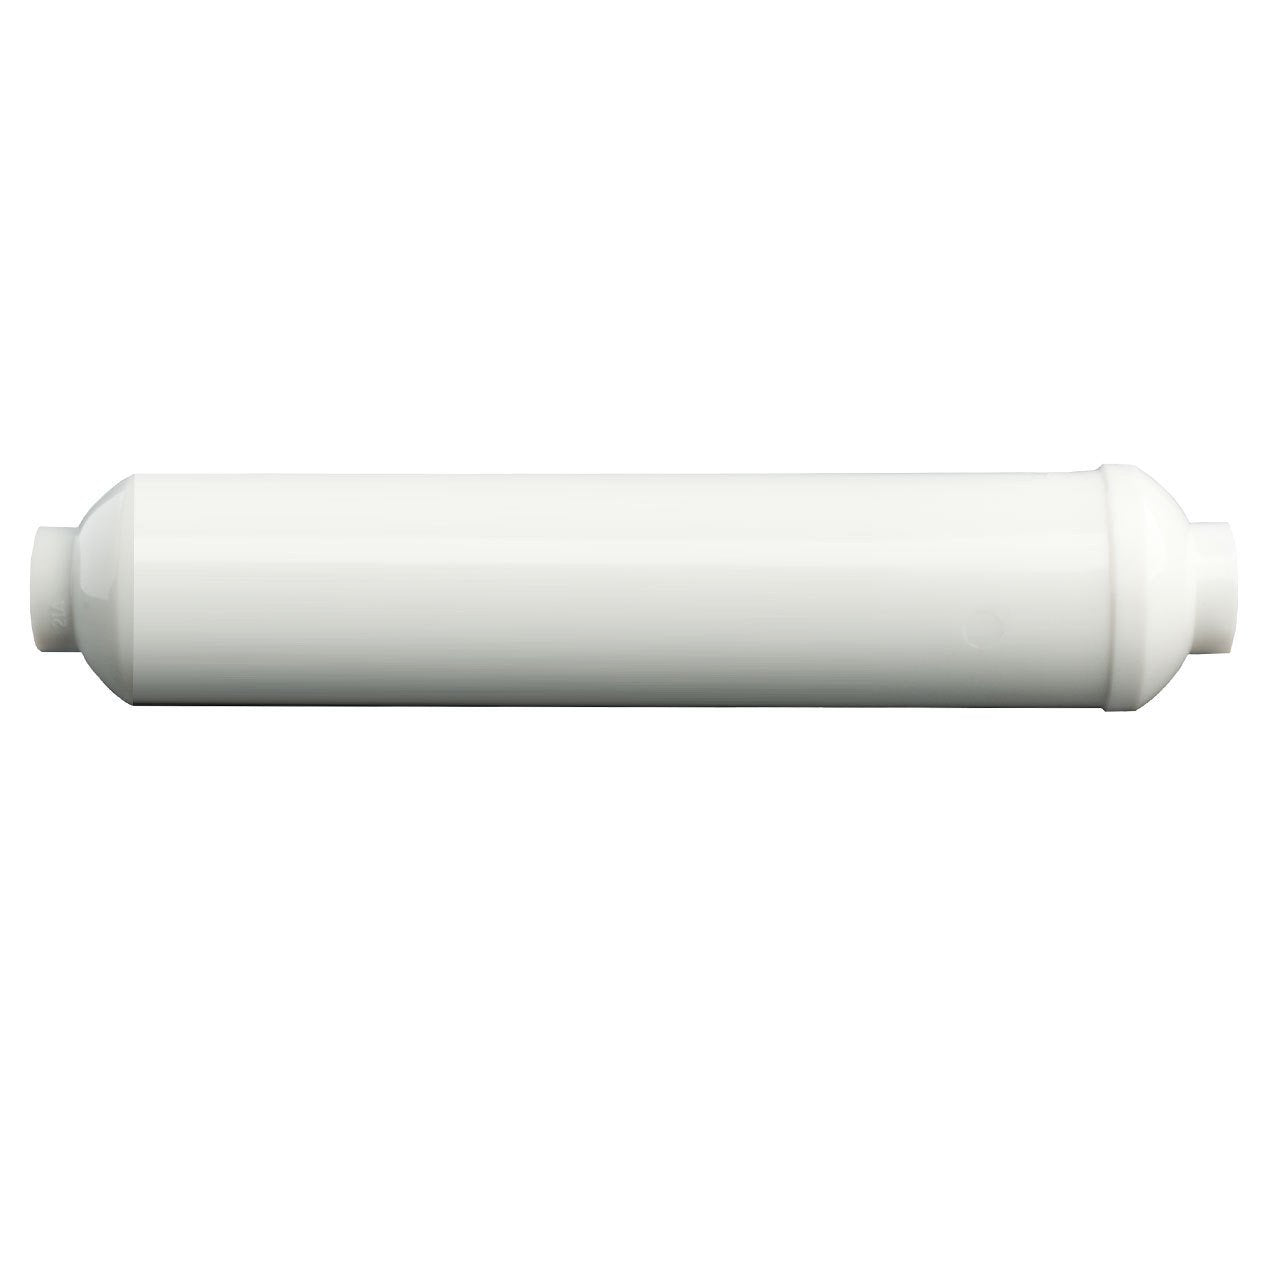 Watts Premier 107008 Calcite In-Line Water Filter